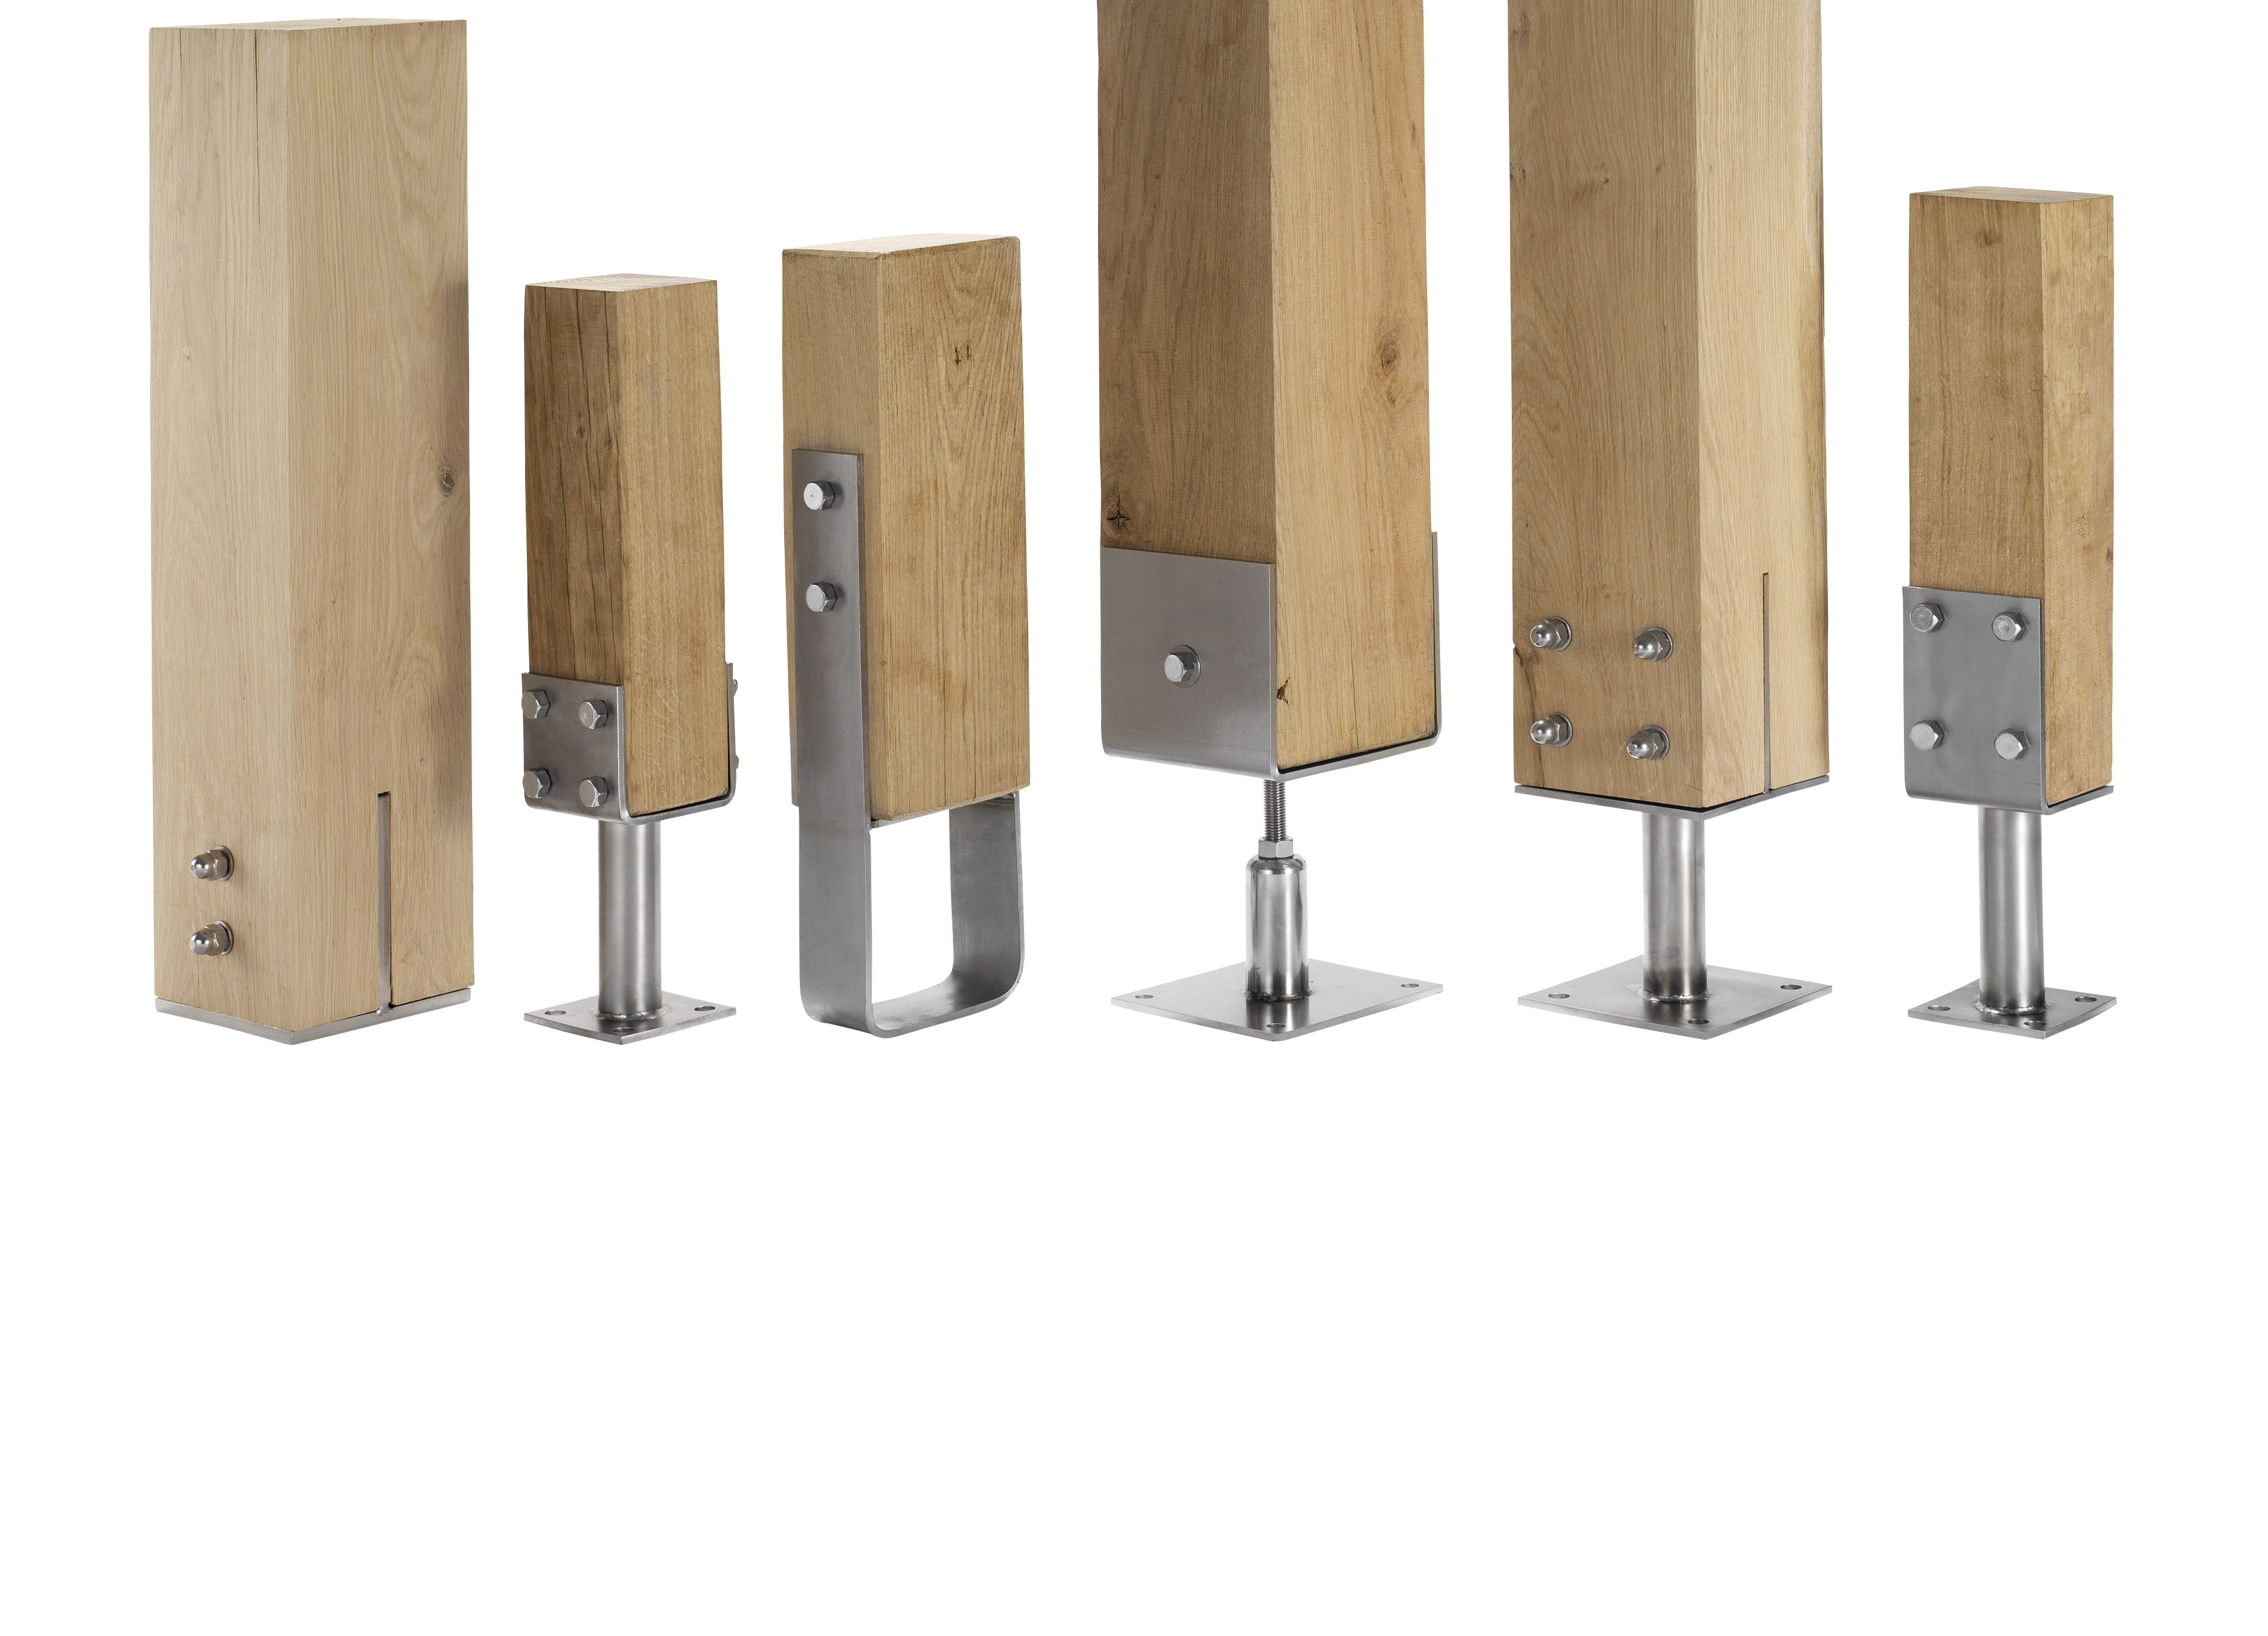 Stainless Steel Timber Connectors Timber Post Supports Tie Bar Systems Bespoke Brackets Heavy In 2020 Timber Frame Joinery Timber Posts Timber Frame Construction